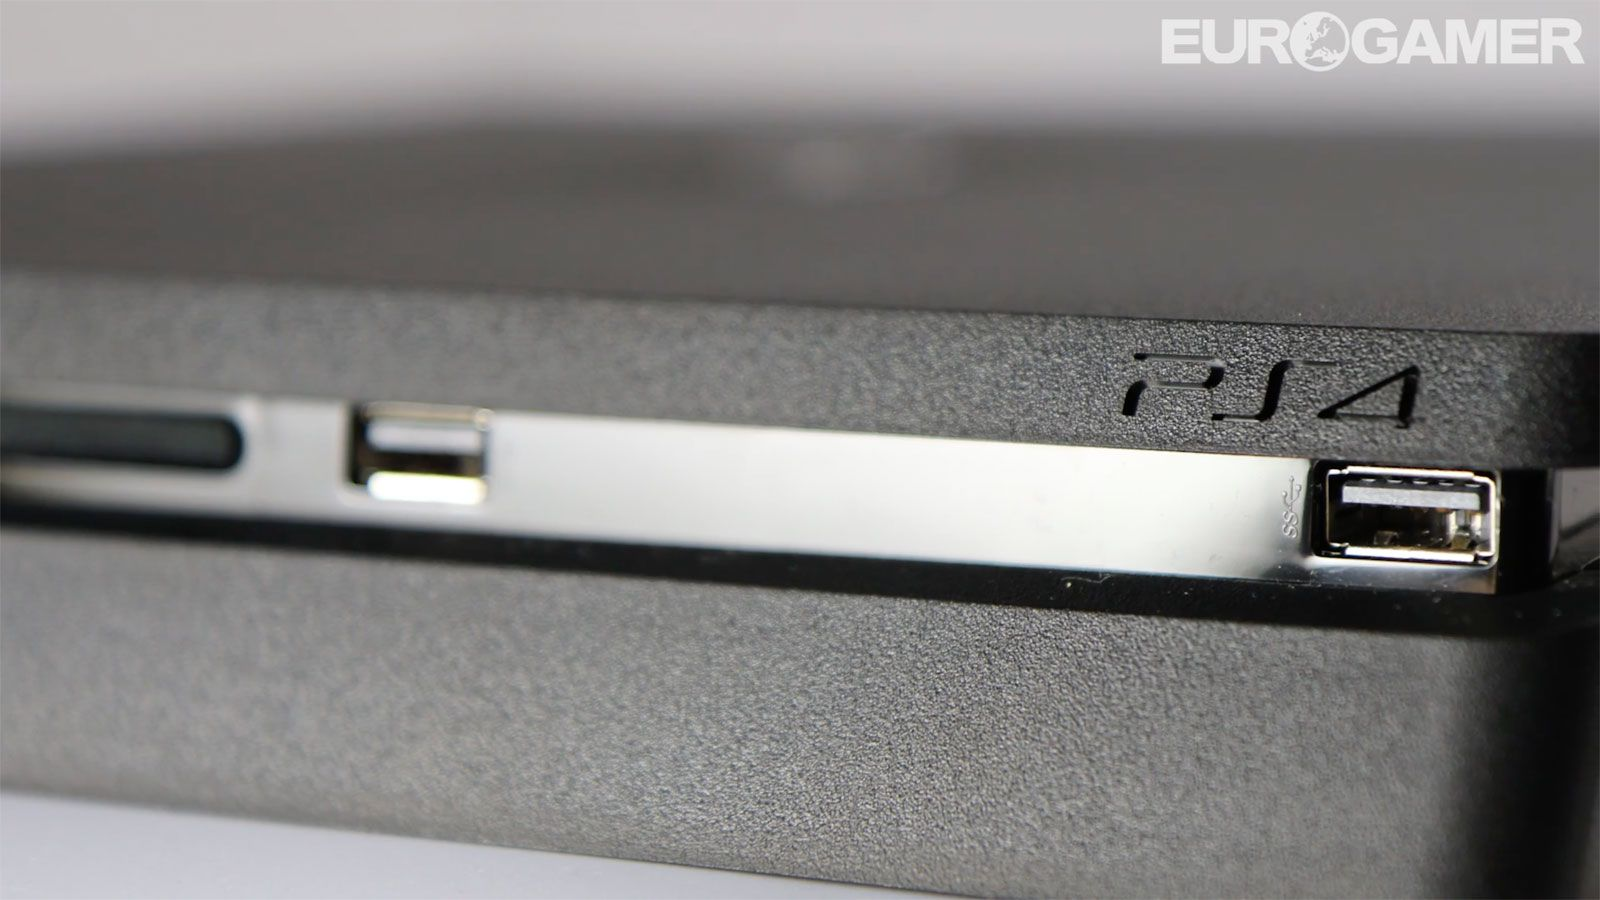 The slim PS4 is looking realer every day Ps4, Newest